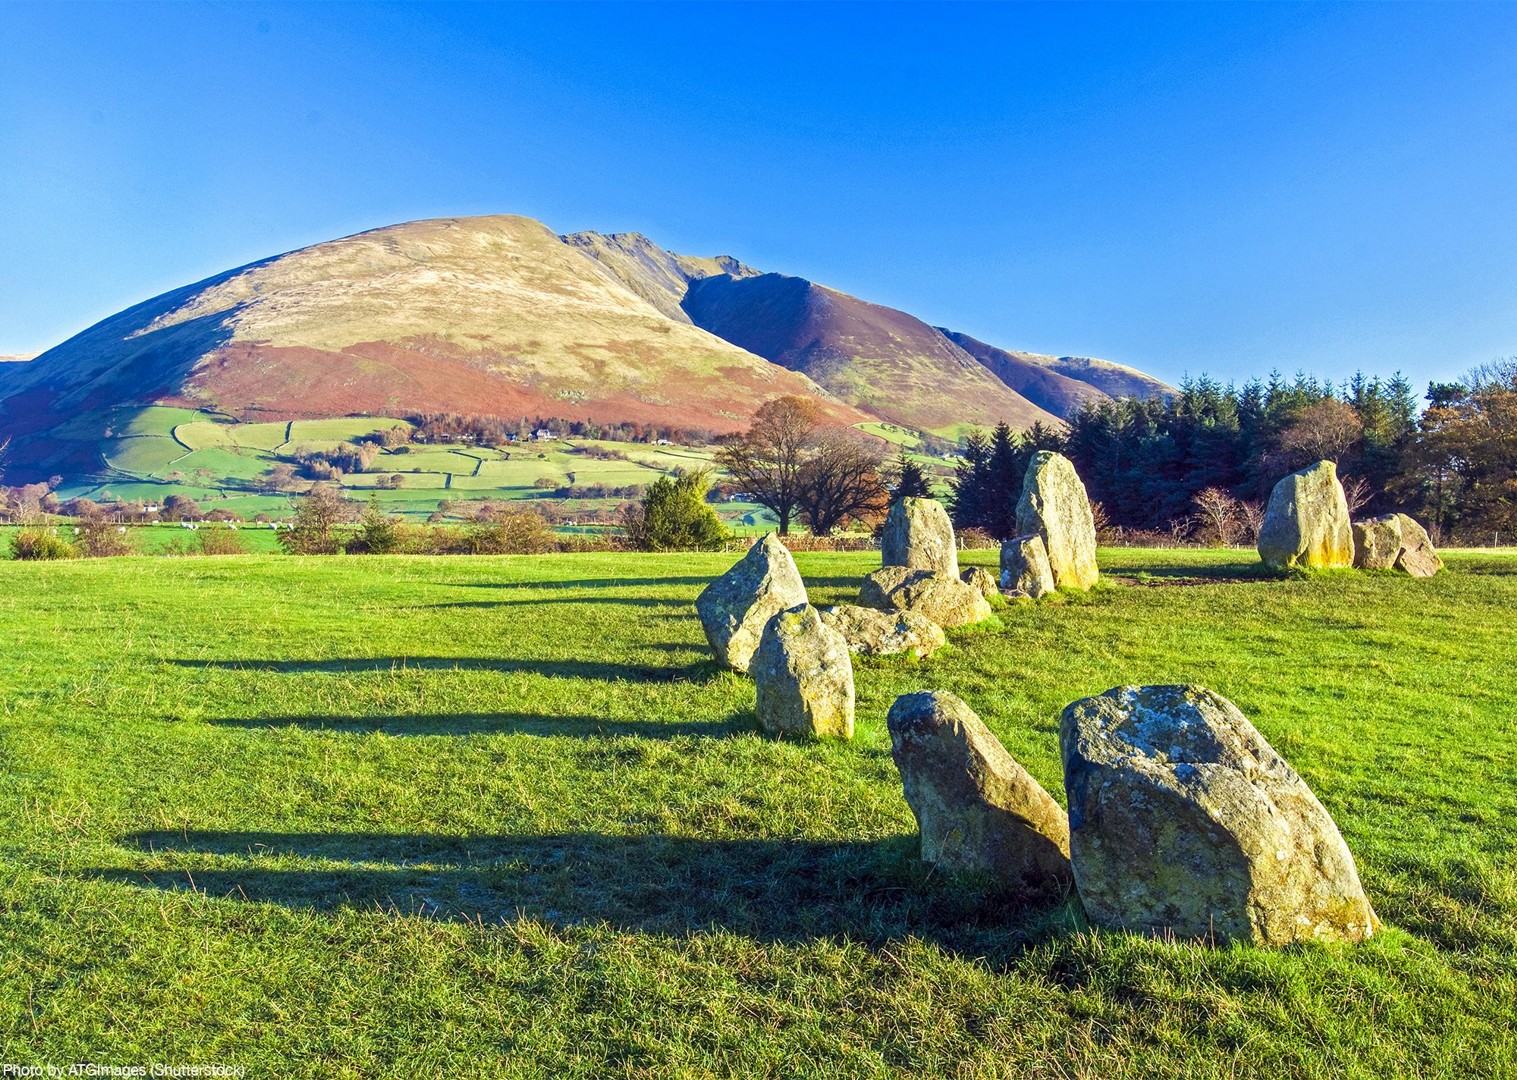 castlerigg-stone-circle-3000-bc-culture-uk-bike-leisure-tour-self-guided.jpg - UK - Lake District - Derwent Water - Self-Guided Leisure Cycling Holiday - Leisure Cycling